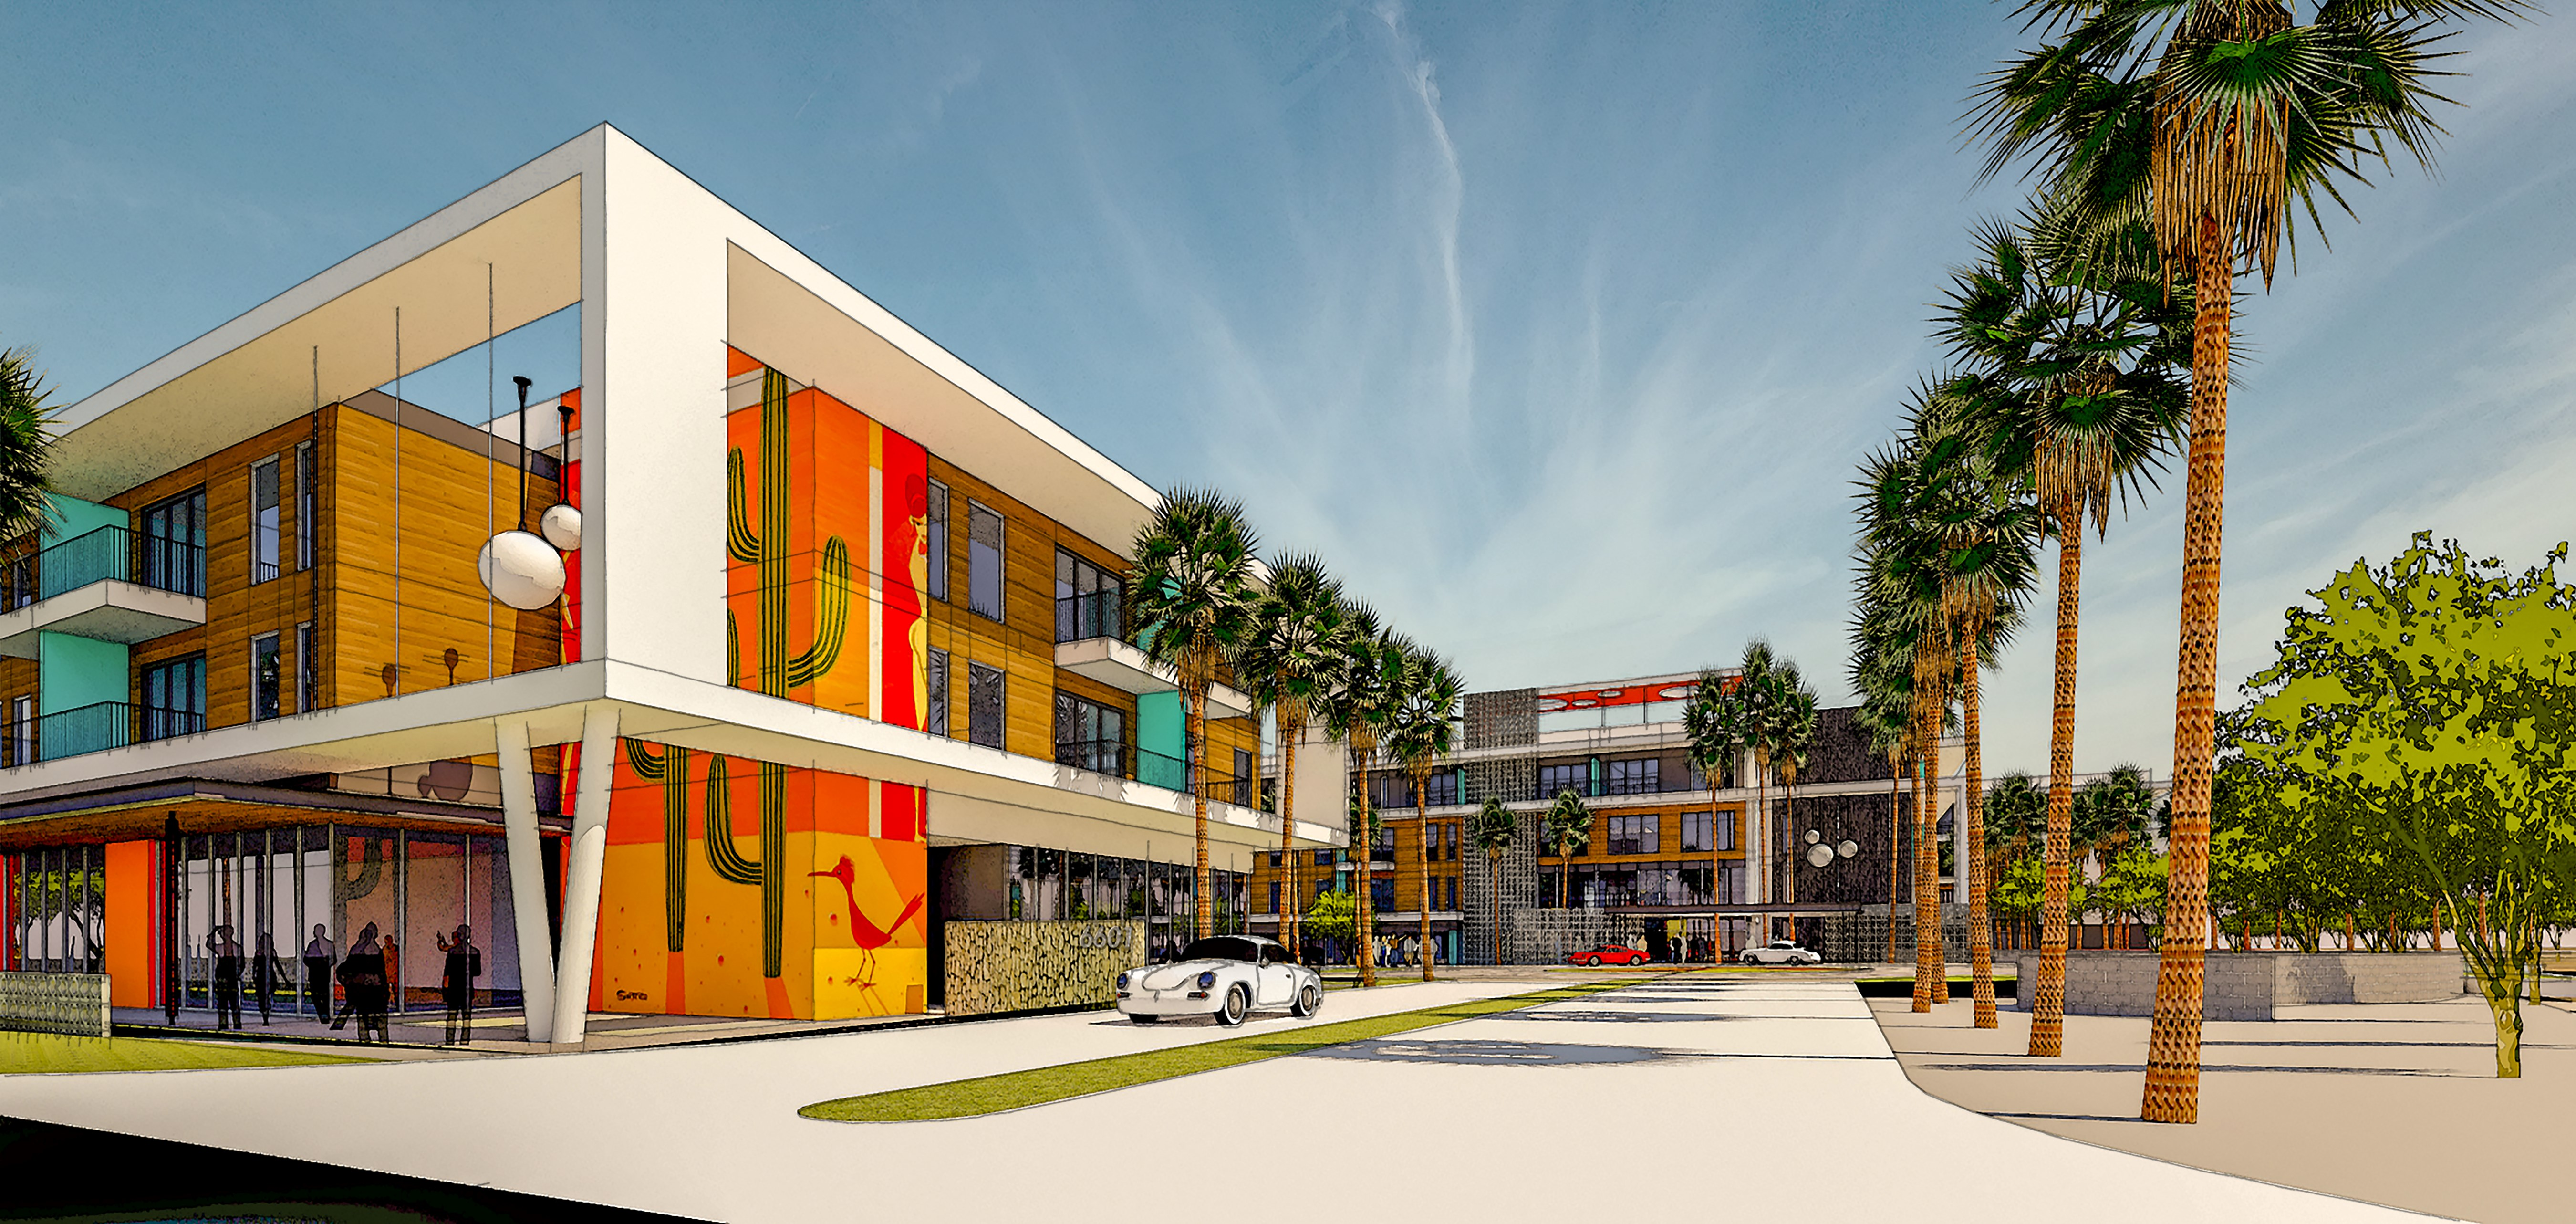 Colorful exterior rendering